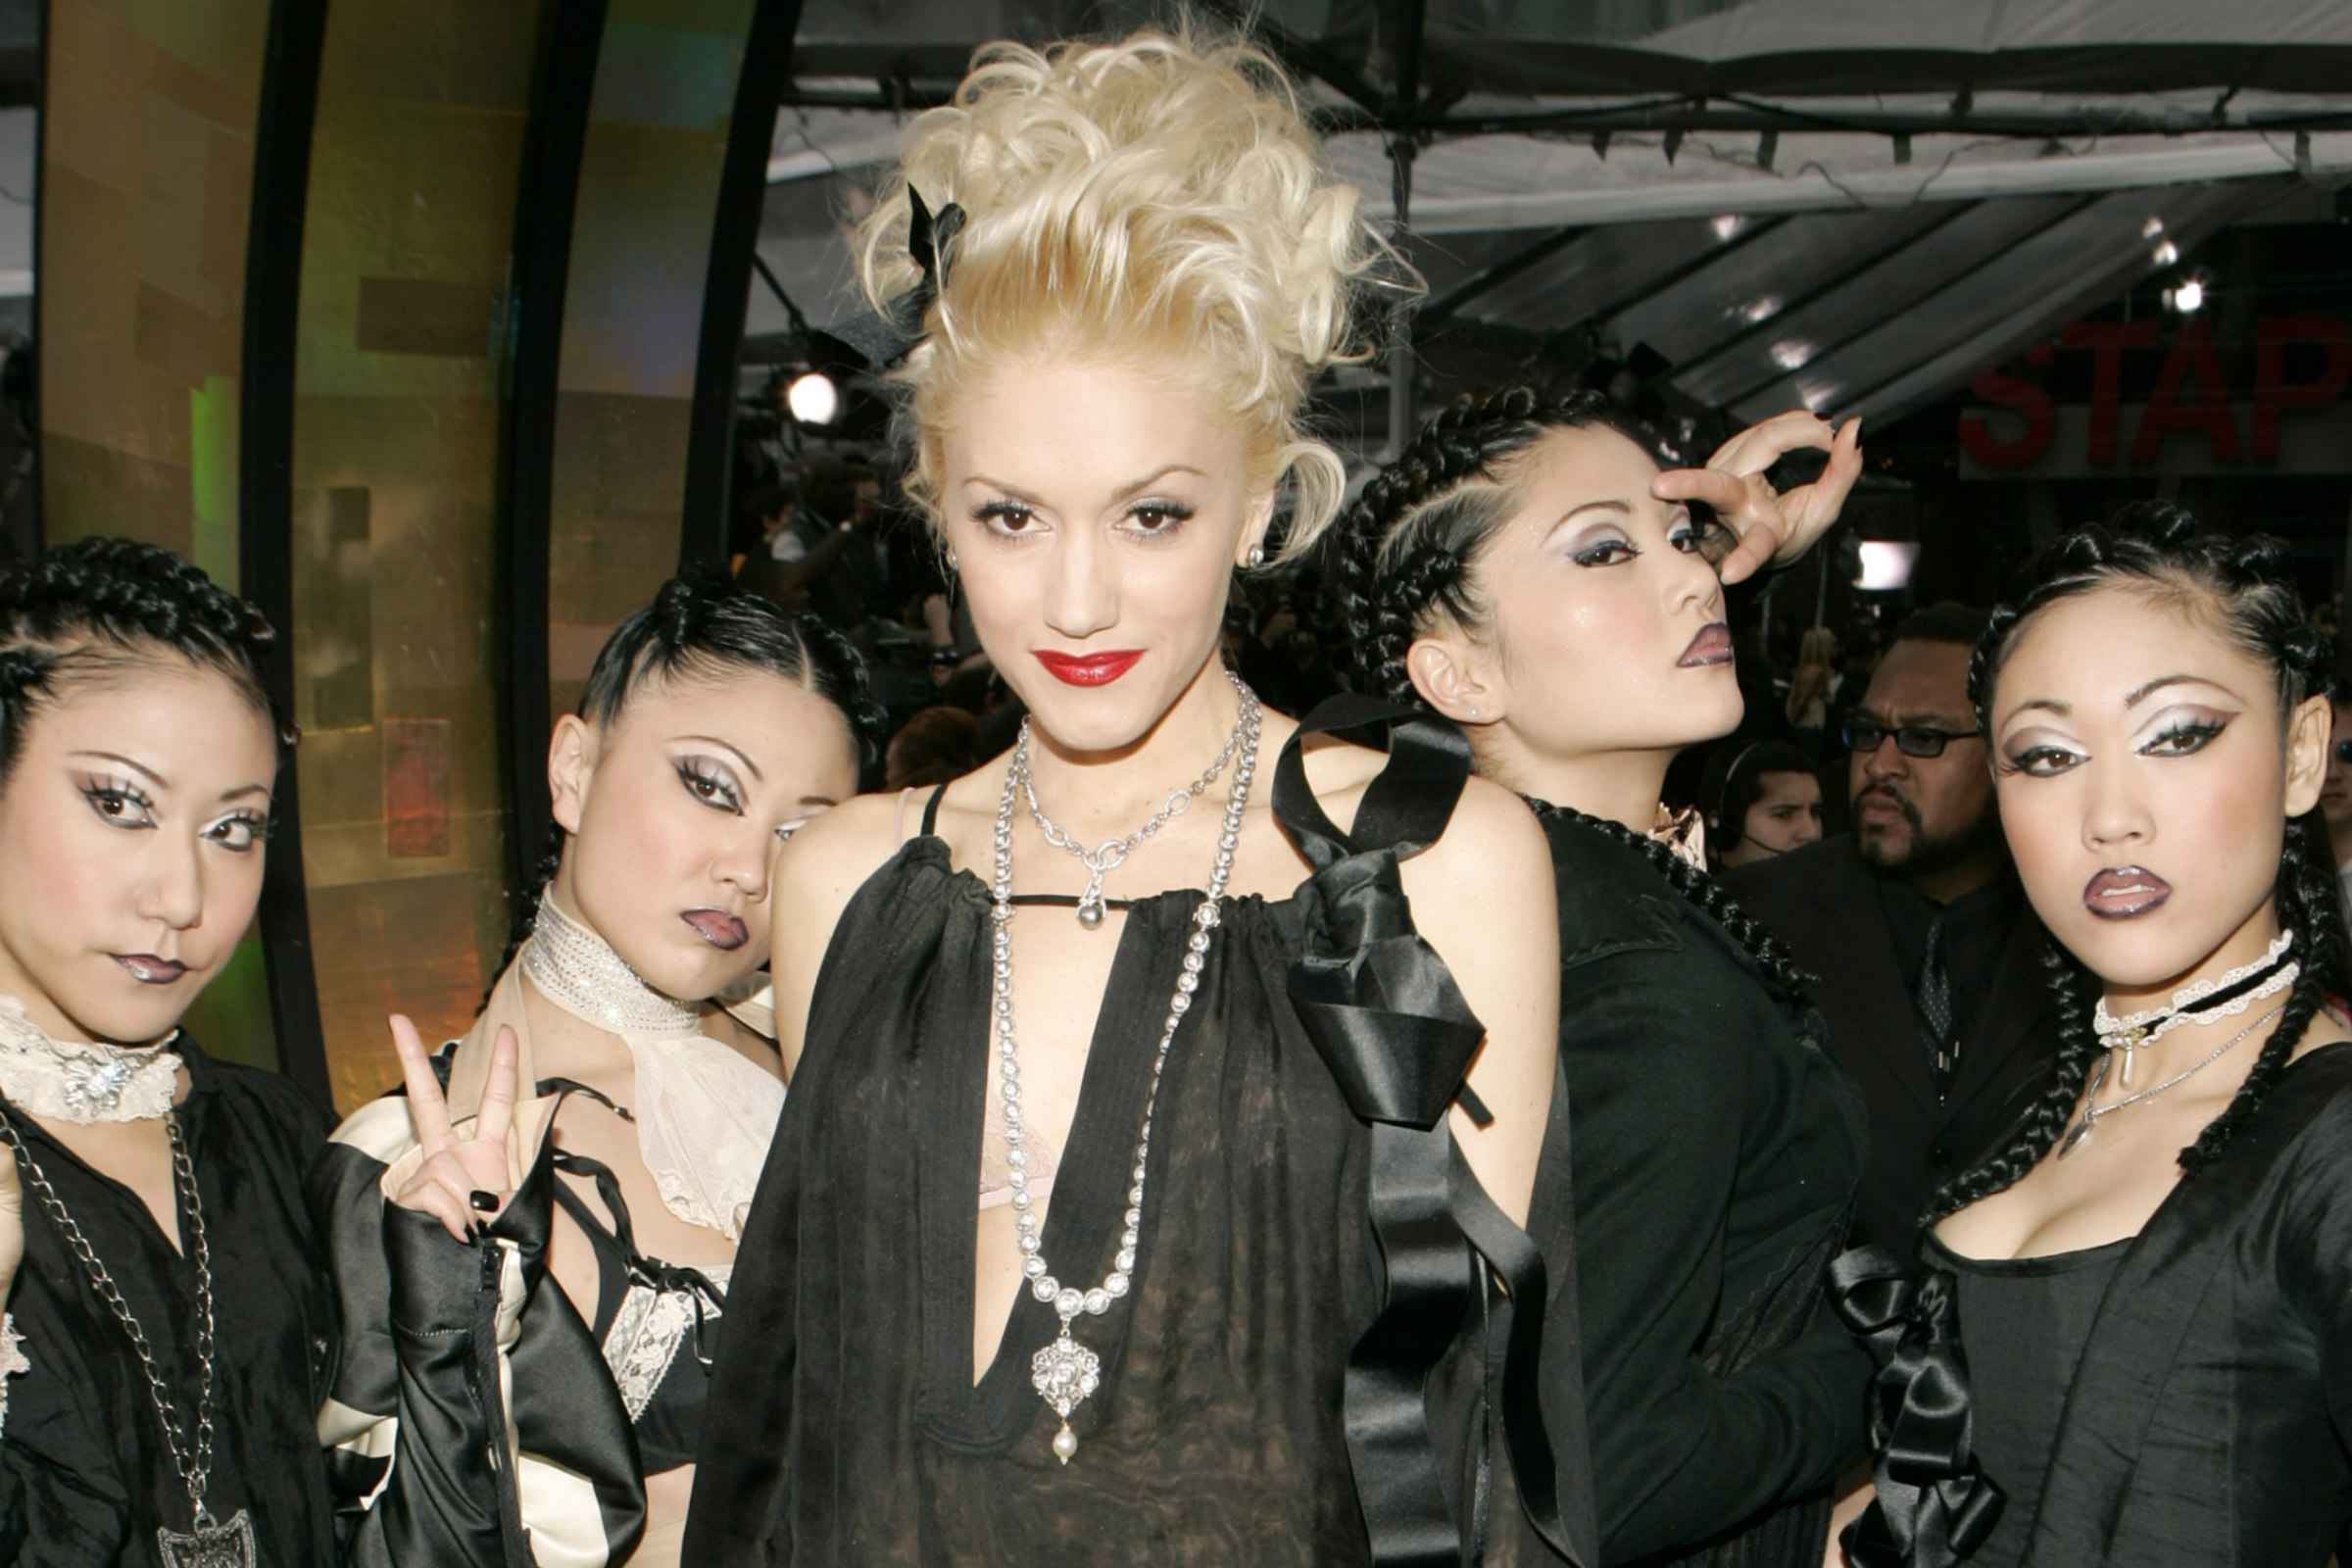 Gwen Stefani, a white woman with blond hair, poses alongside the Harajuku Girls, a group of four Japanese women dressed in all black